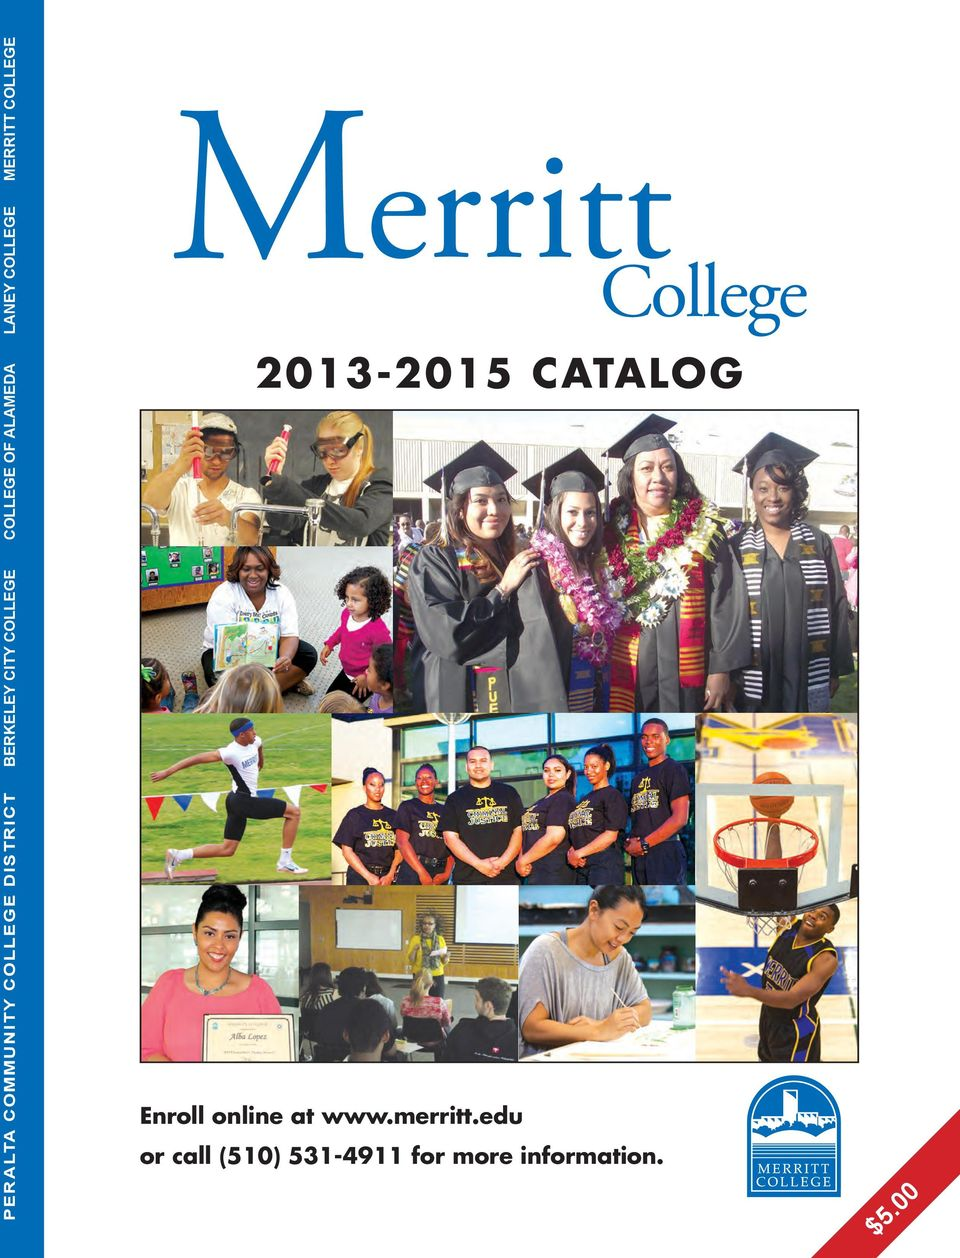 COLLEGE Merritt 2013-2015 CATALOG Enroll online at www.